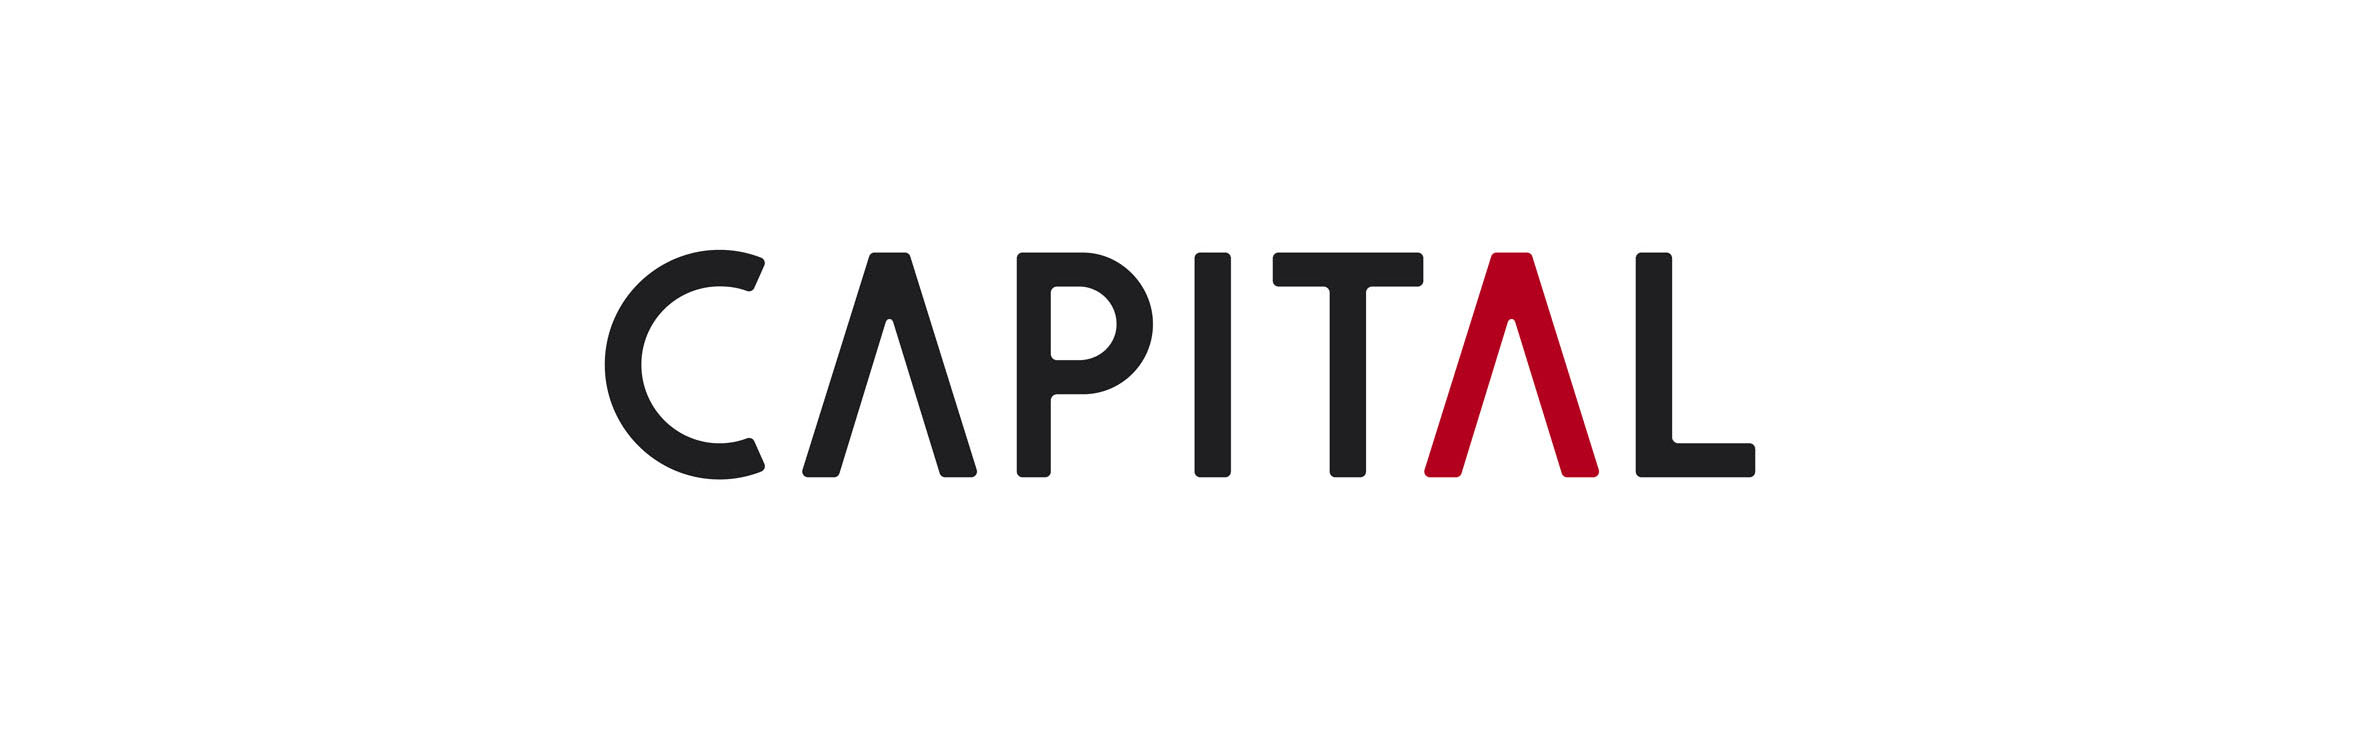 logo-revista-capital